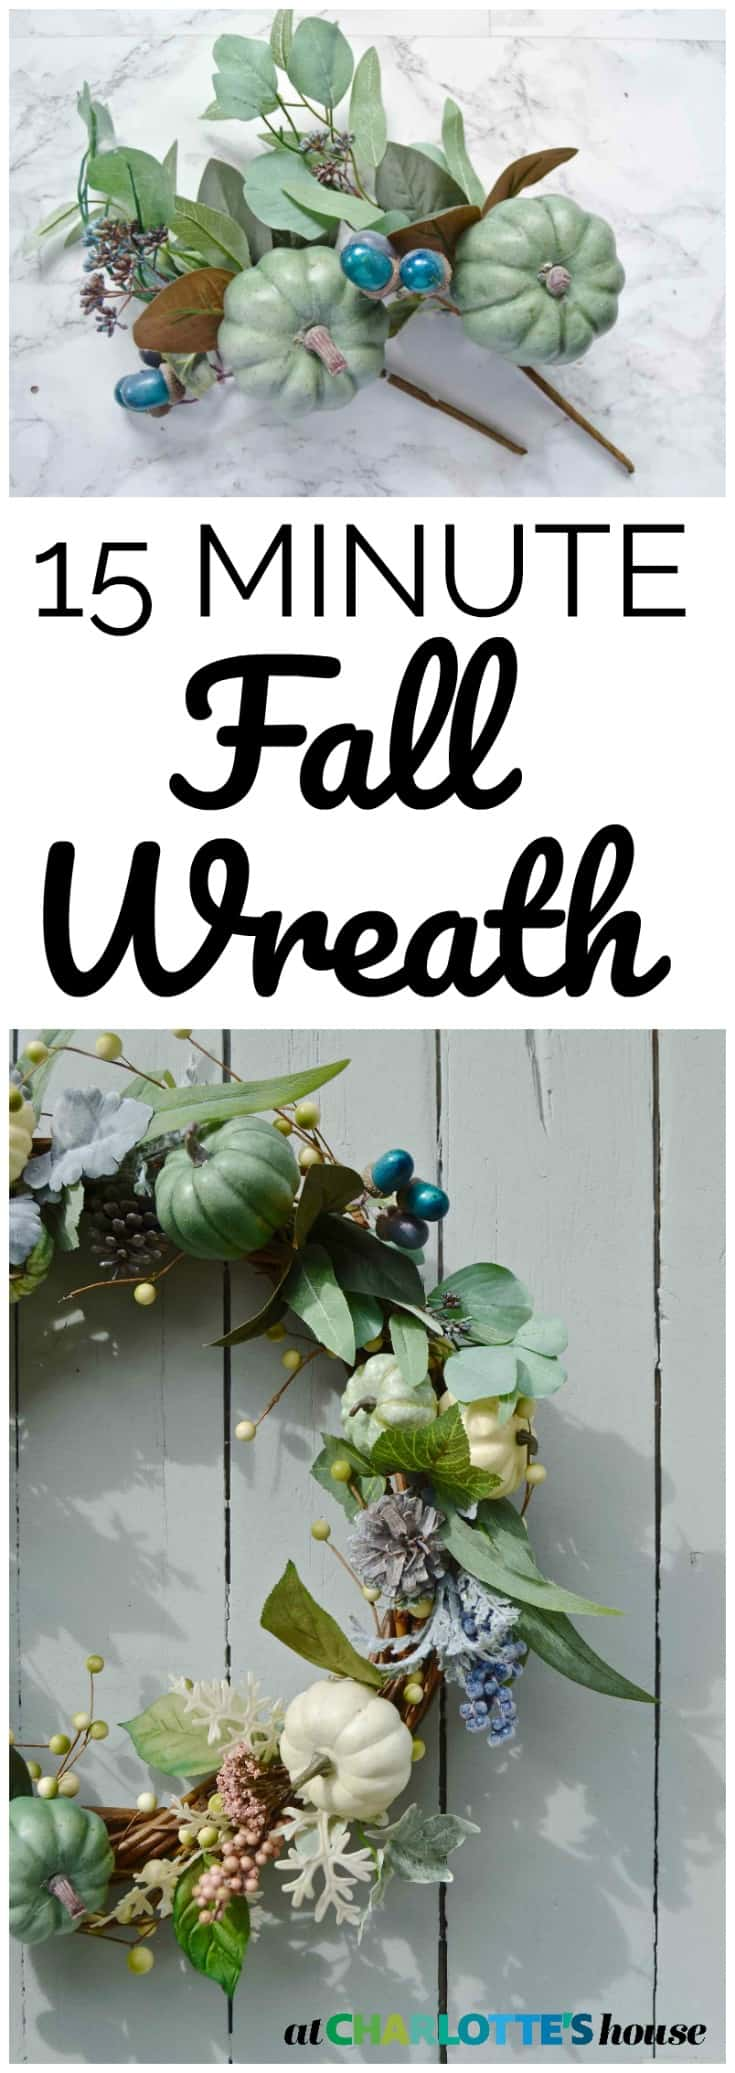 I LOVE a seasonal wreath but they can be SO expensive! This one cost half the price of the others and only took 15 minutes to make!